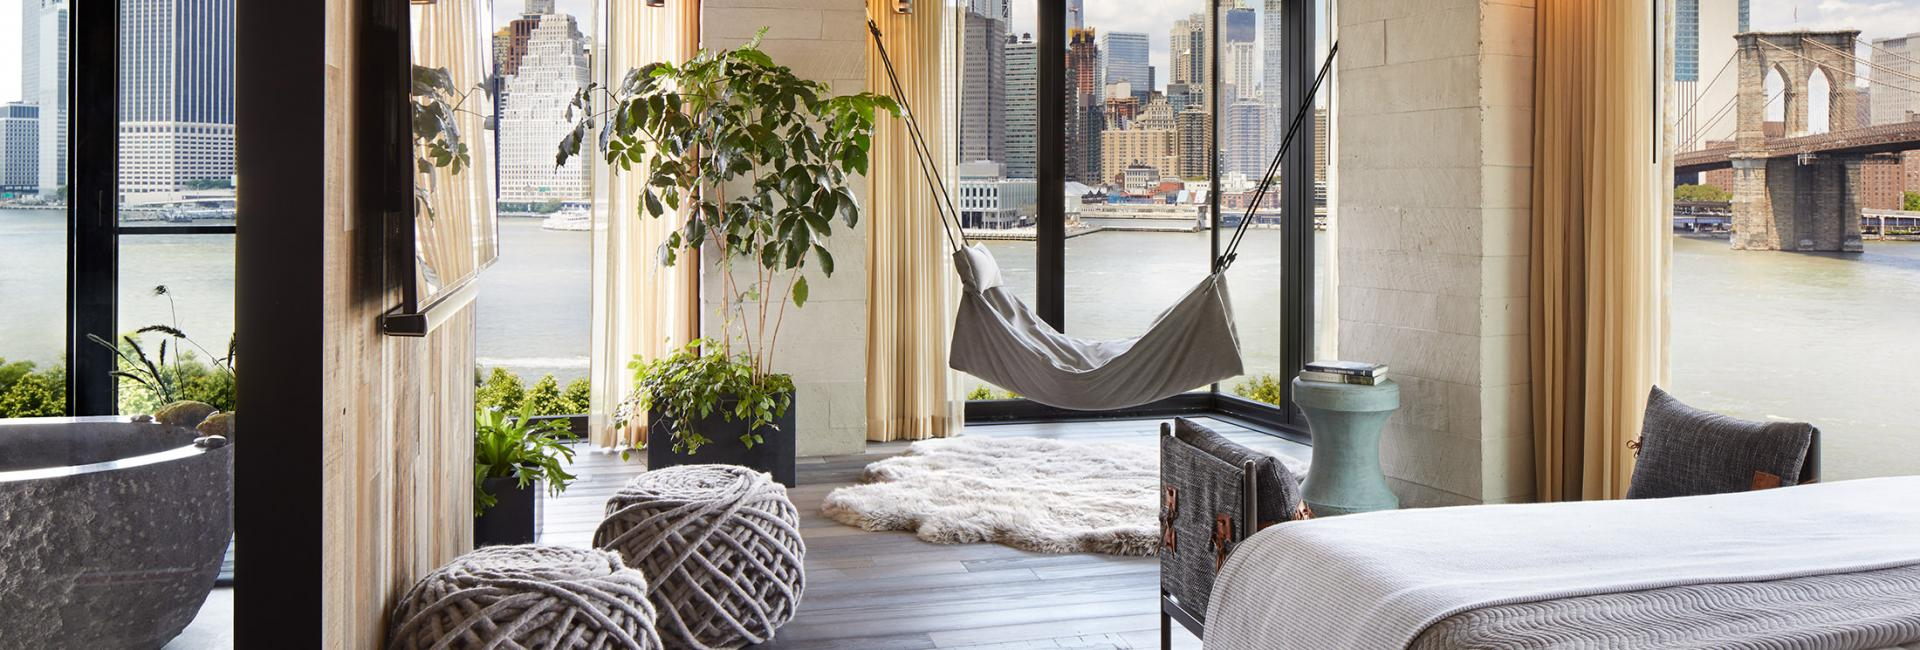 hotel brooklyn bridge in Hotel design ideas at home